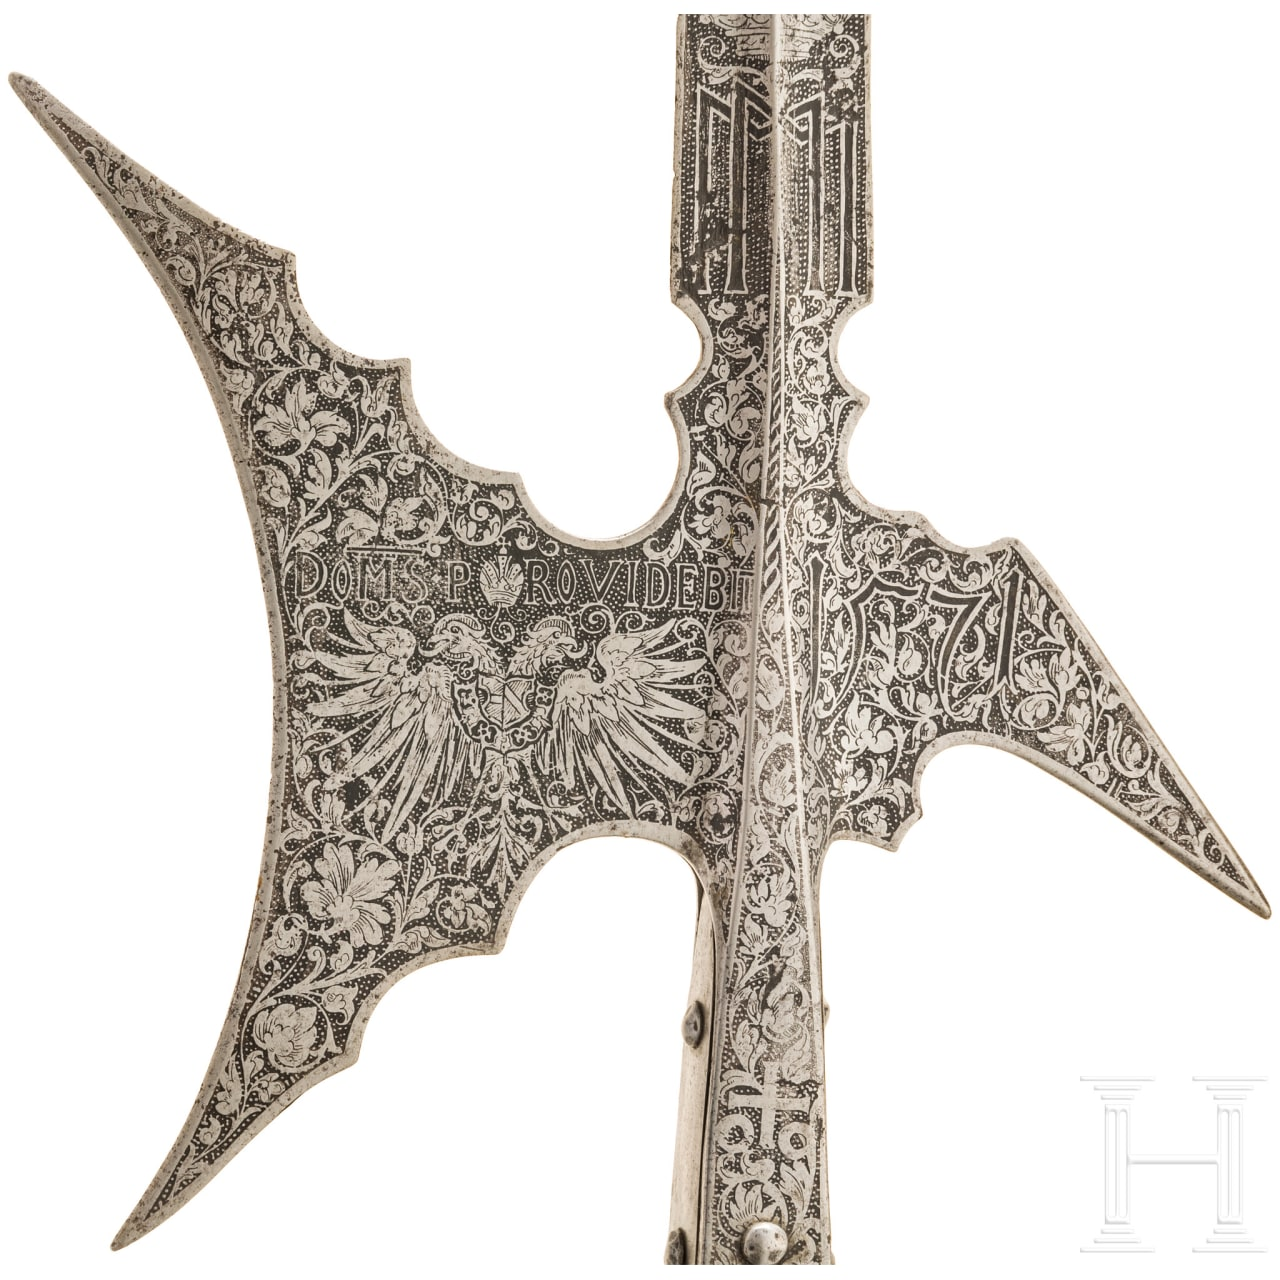 An etched halberd for the trabant guard of Emperor Maximilian II, Augsburg, dated 1571